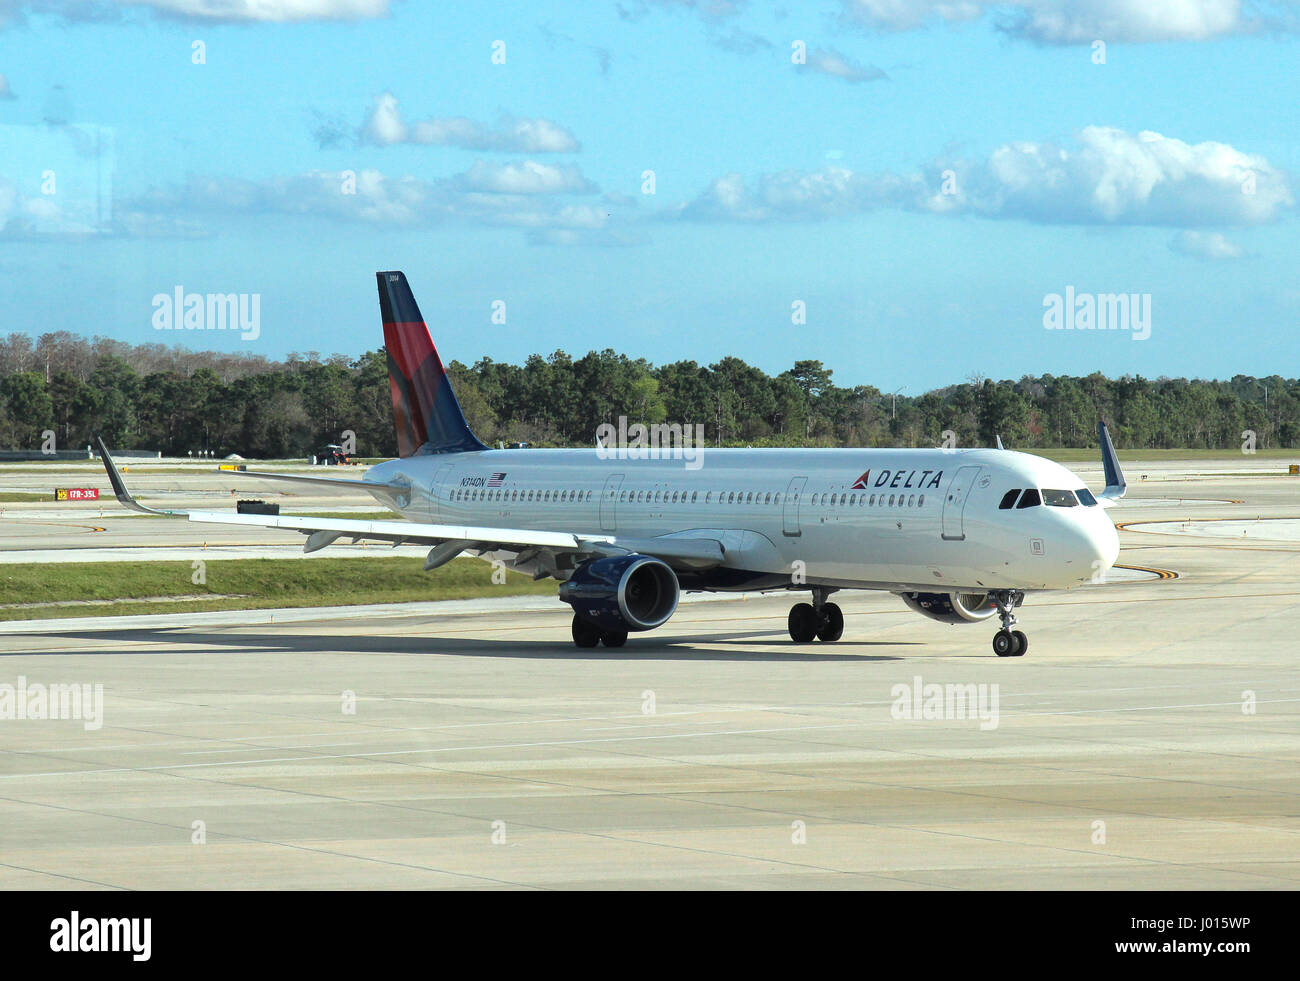 Delta Air Lines Airbus A321-200 - Stock Image